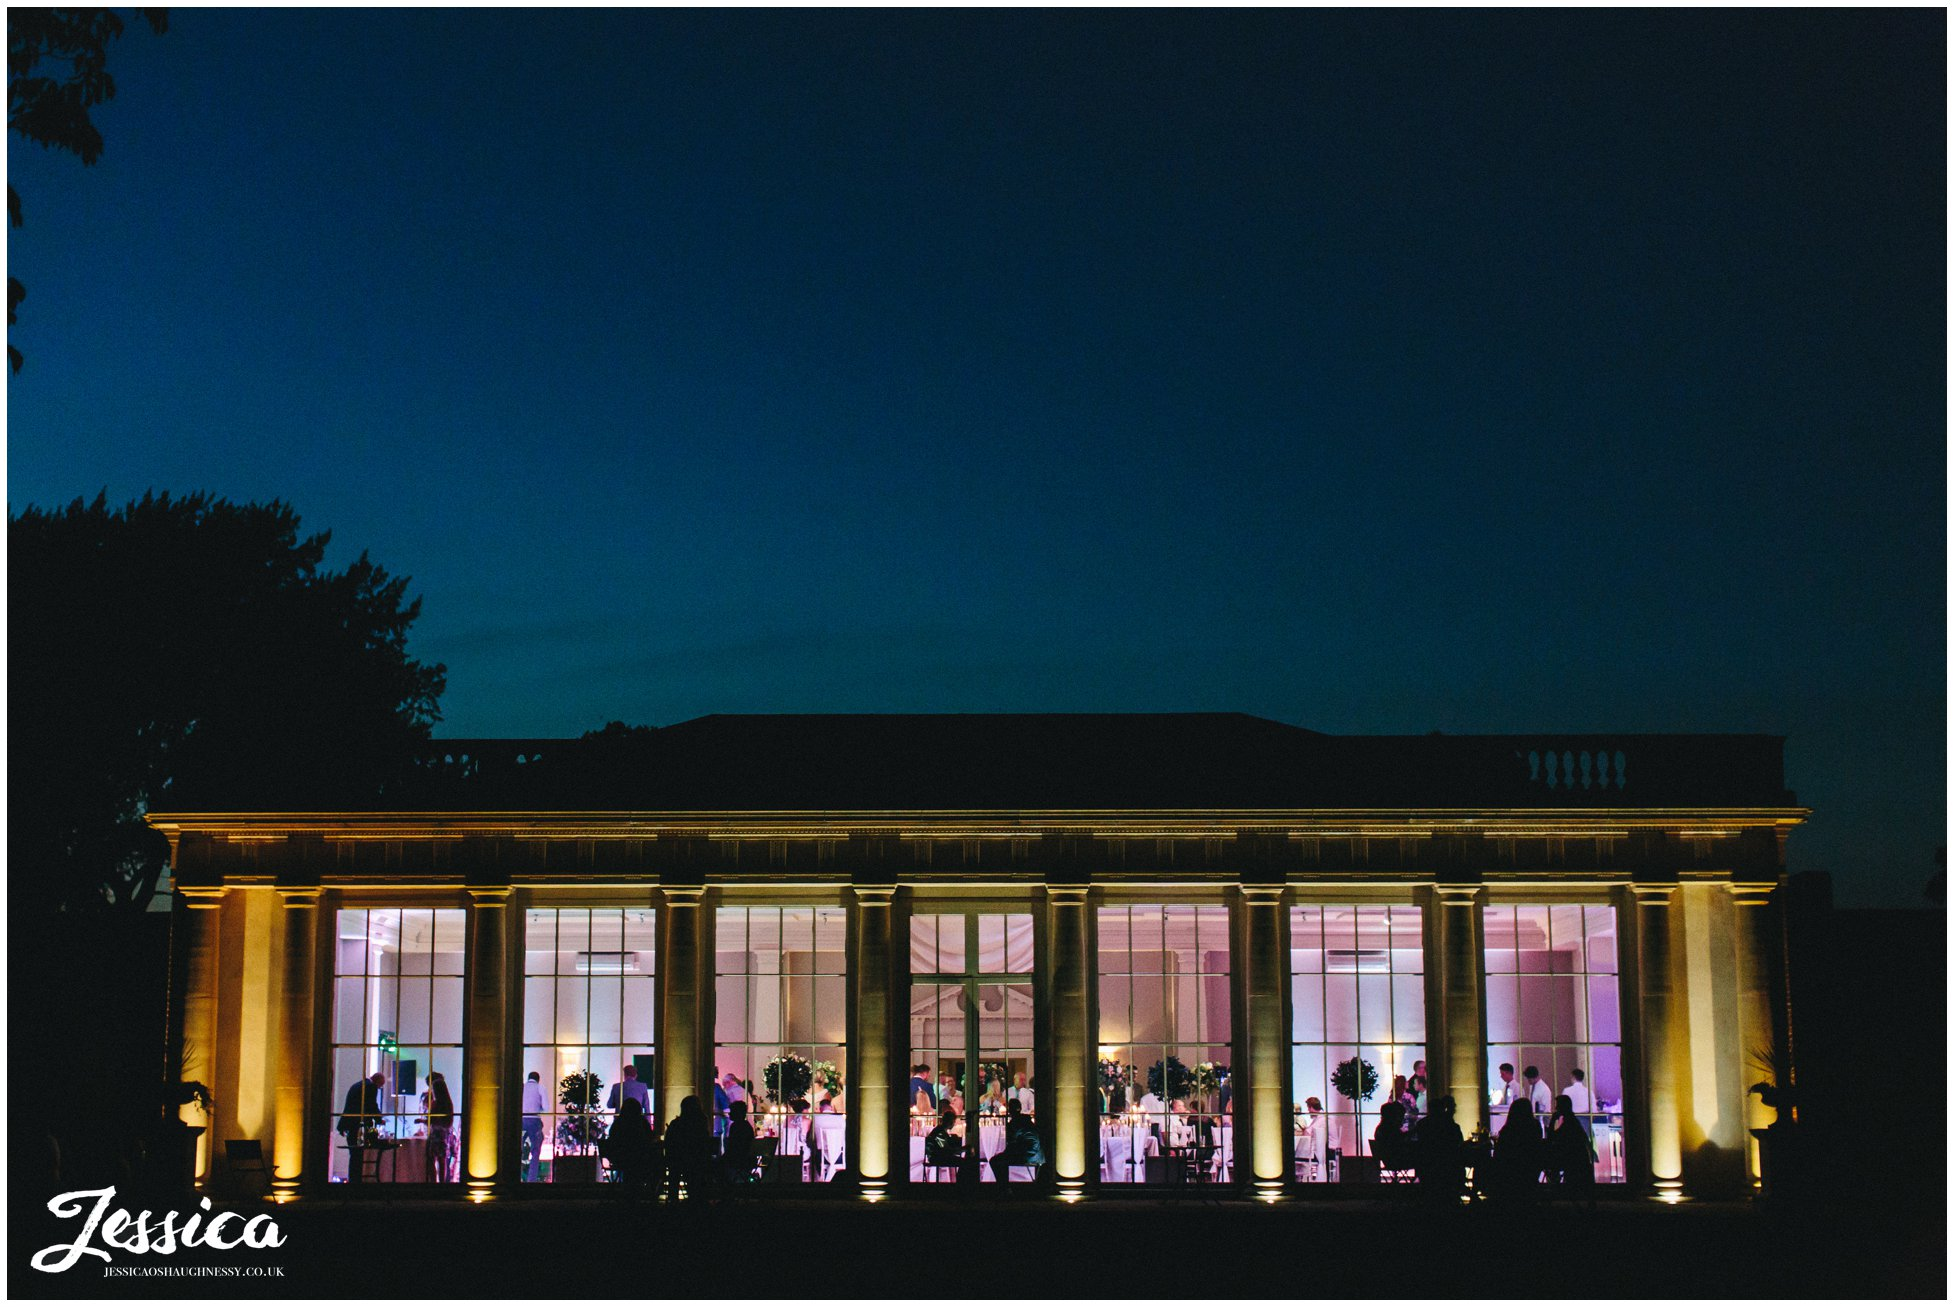 stubton hall lit up at night for the evening reception